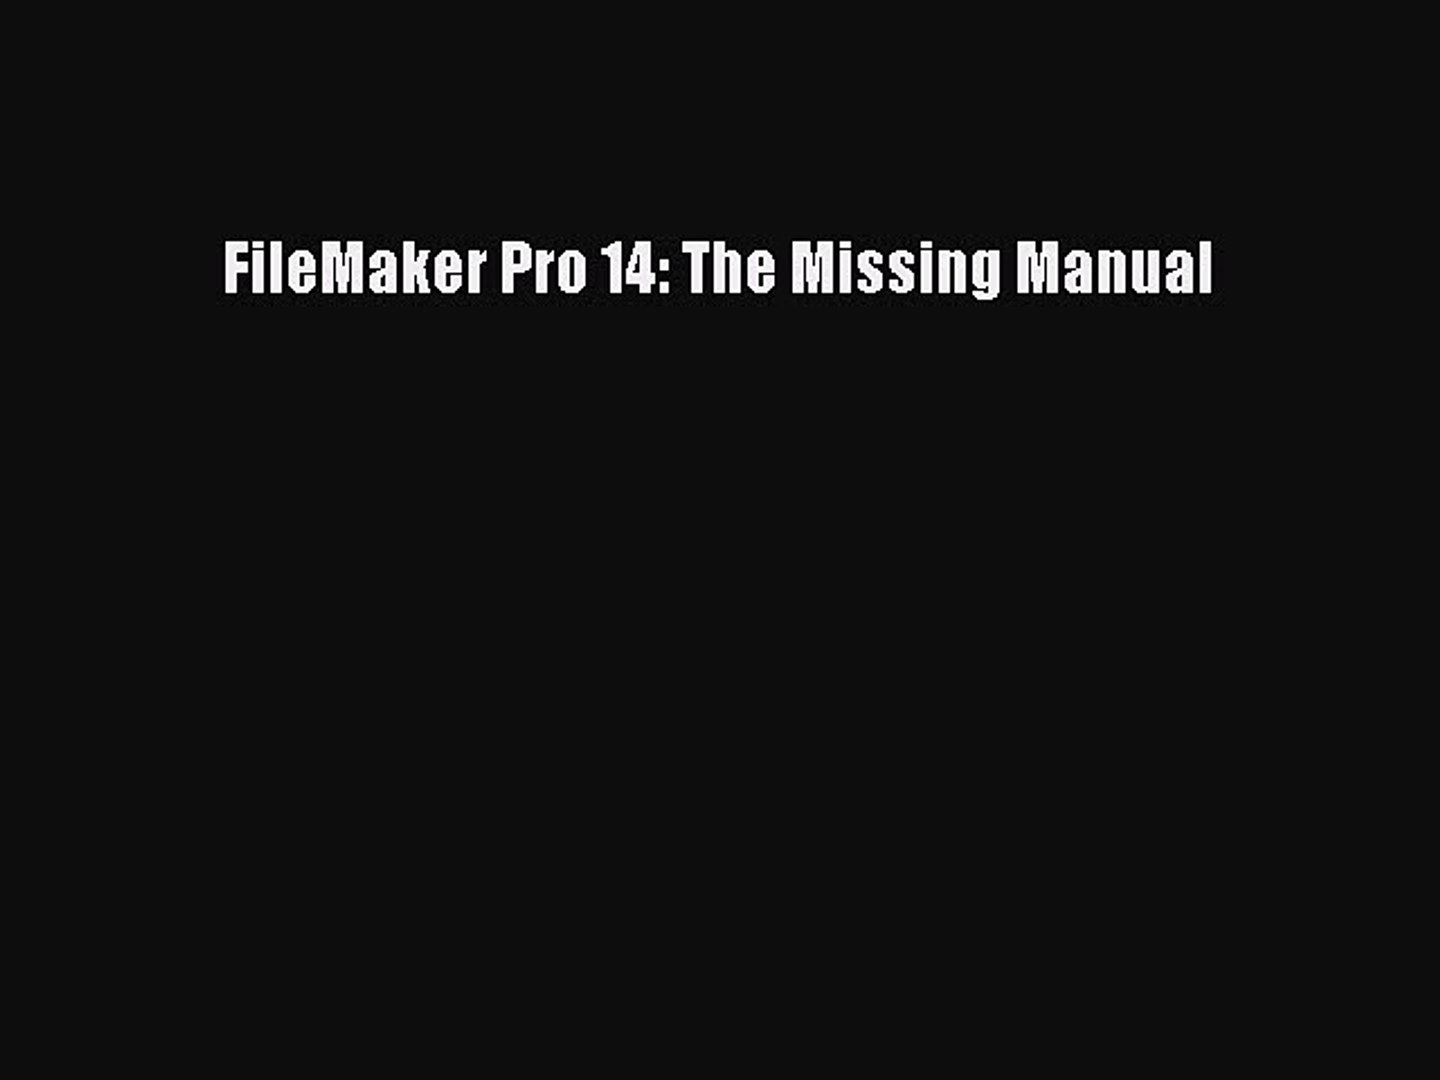 The Missing Manual FileMaker Pro 12